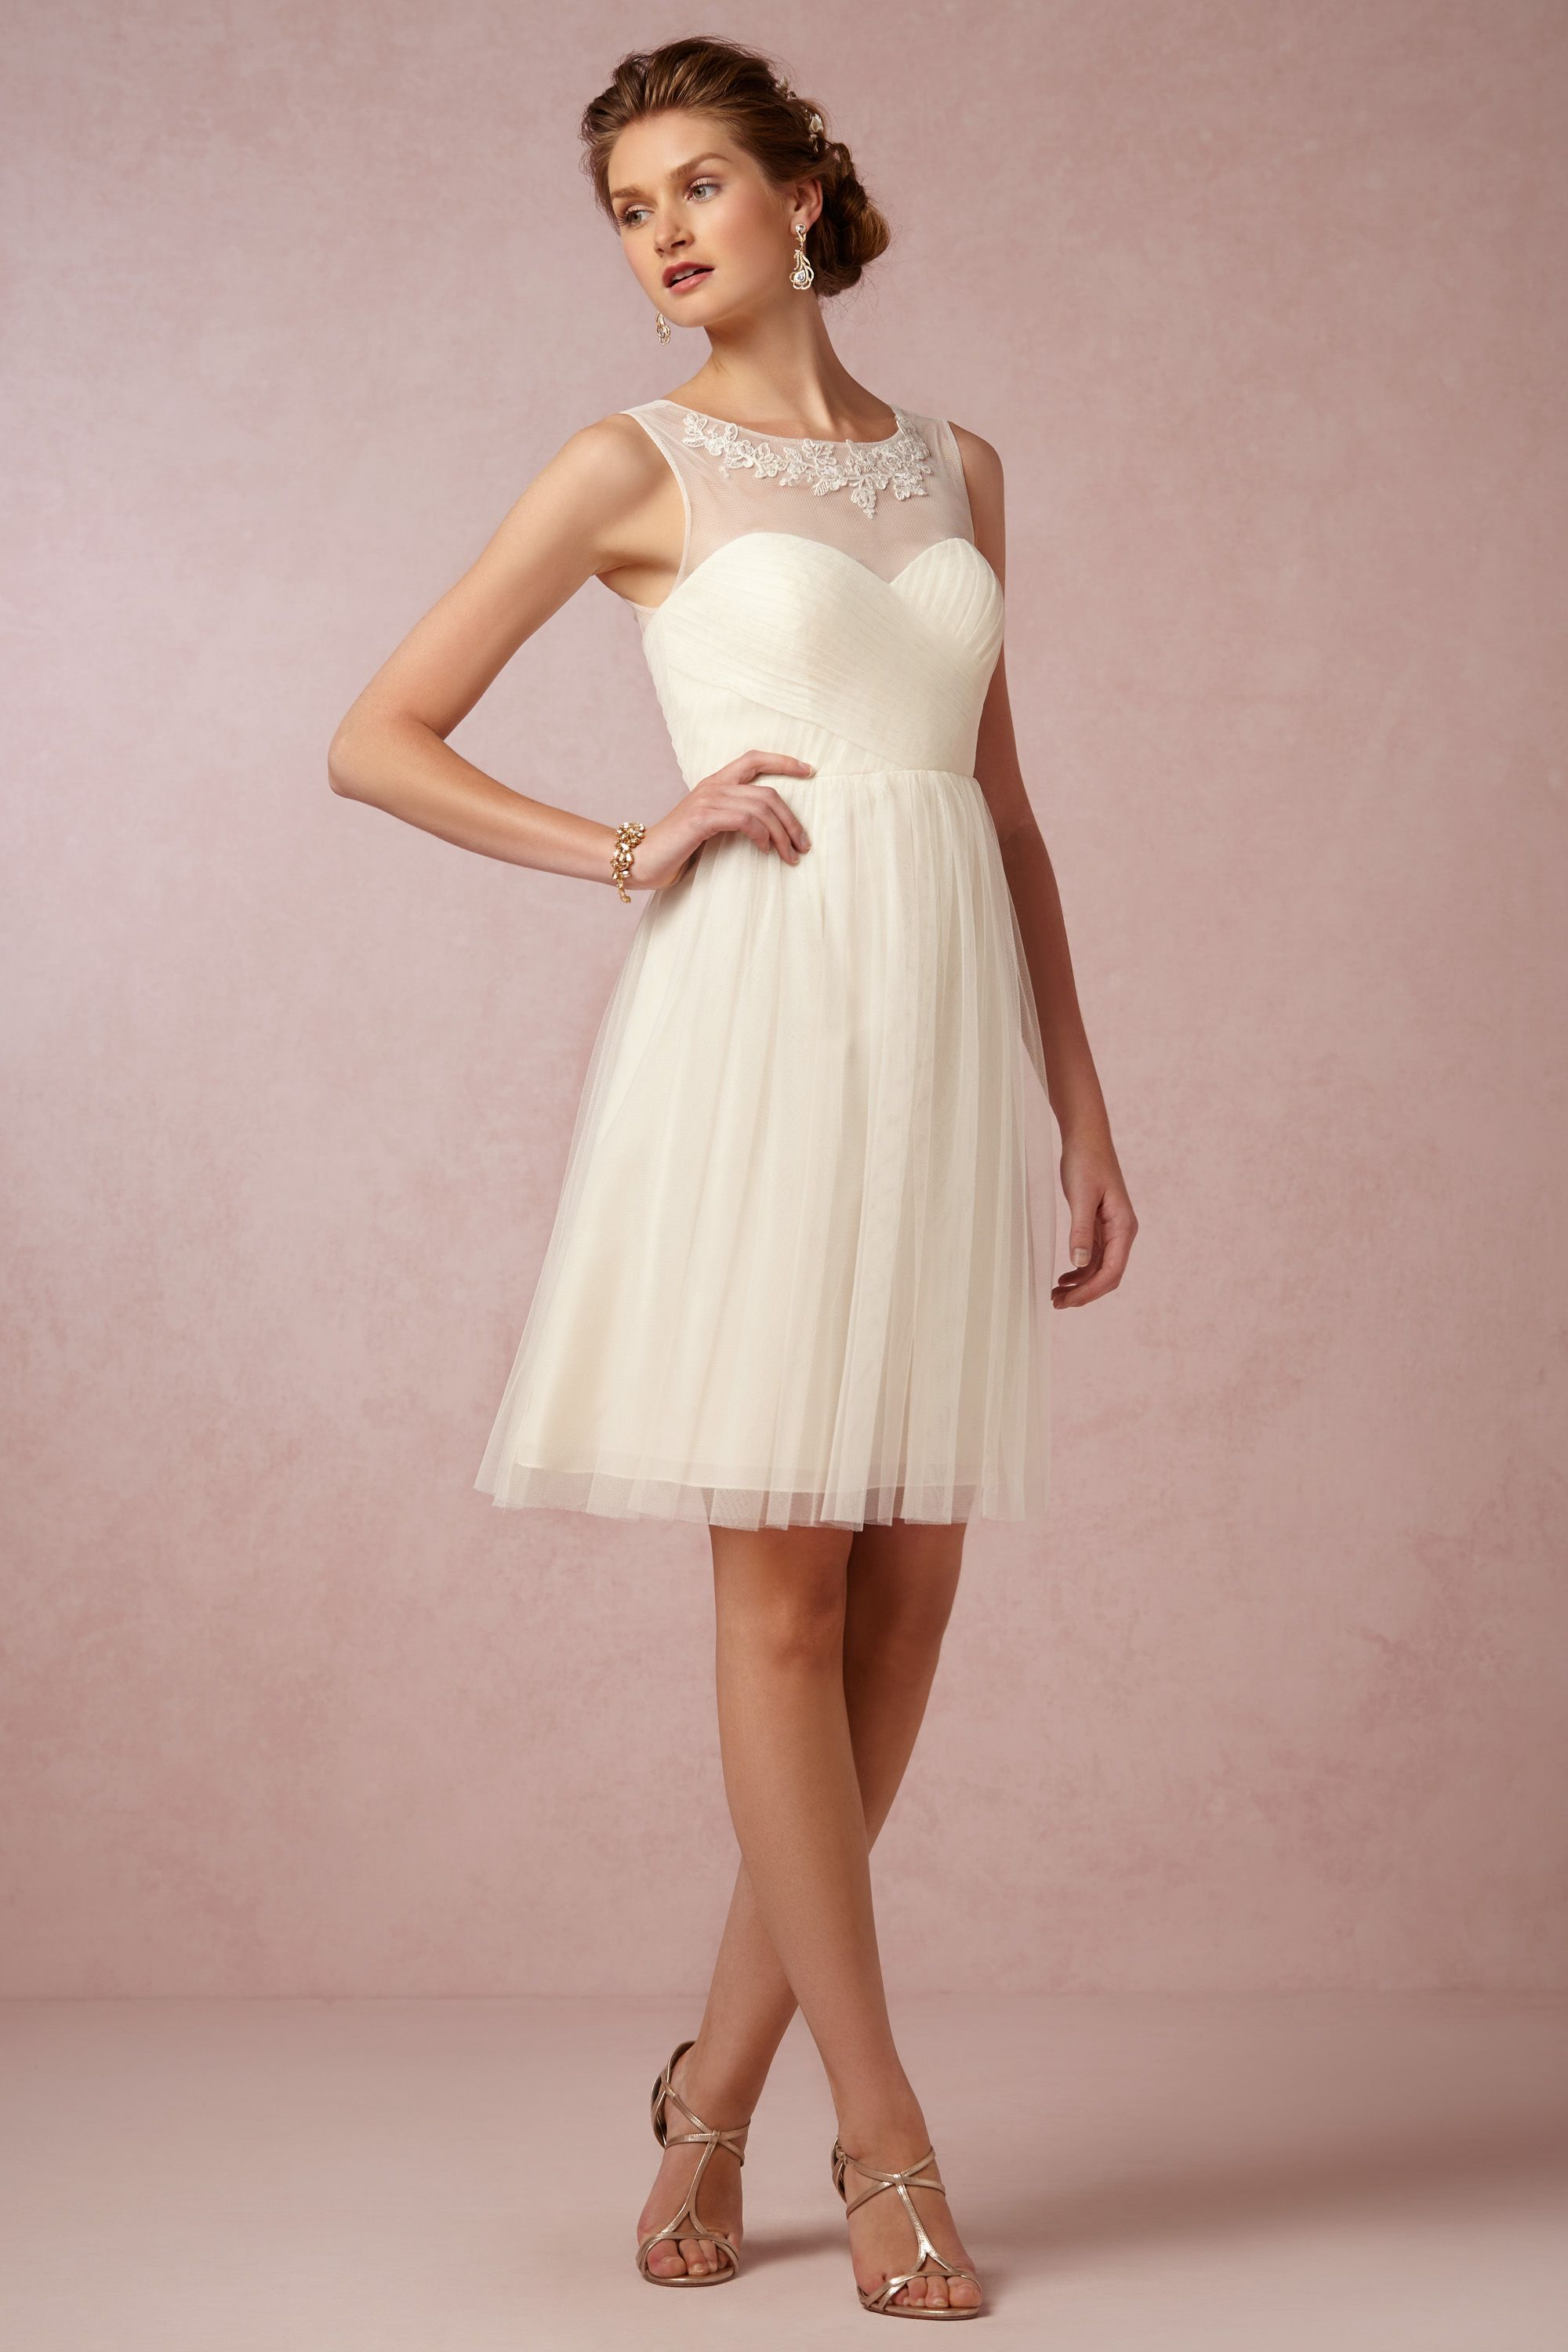 BHLDN Chloe Dress in Bride Reception Dresses at BHLDN | Wedding ...